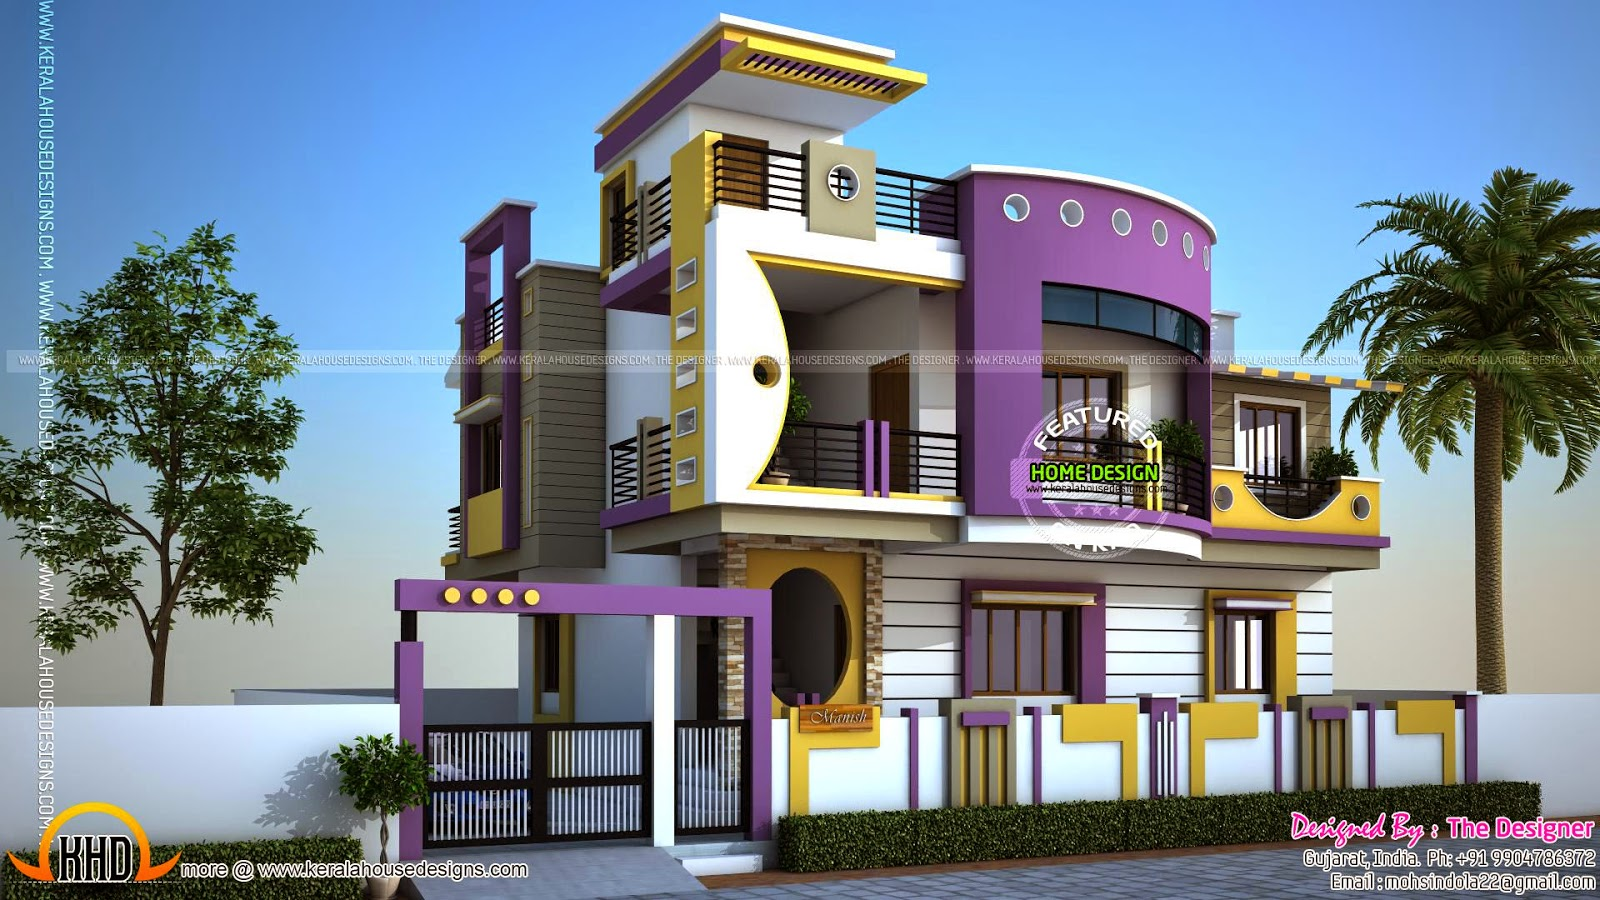 House exterior designs in contemporary style kerala home for Home outside design images